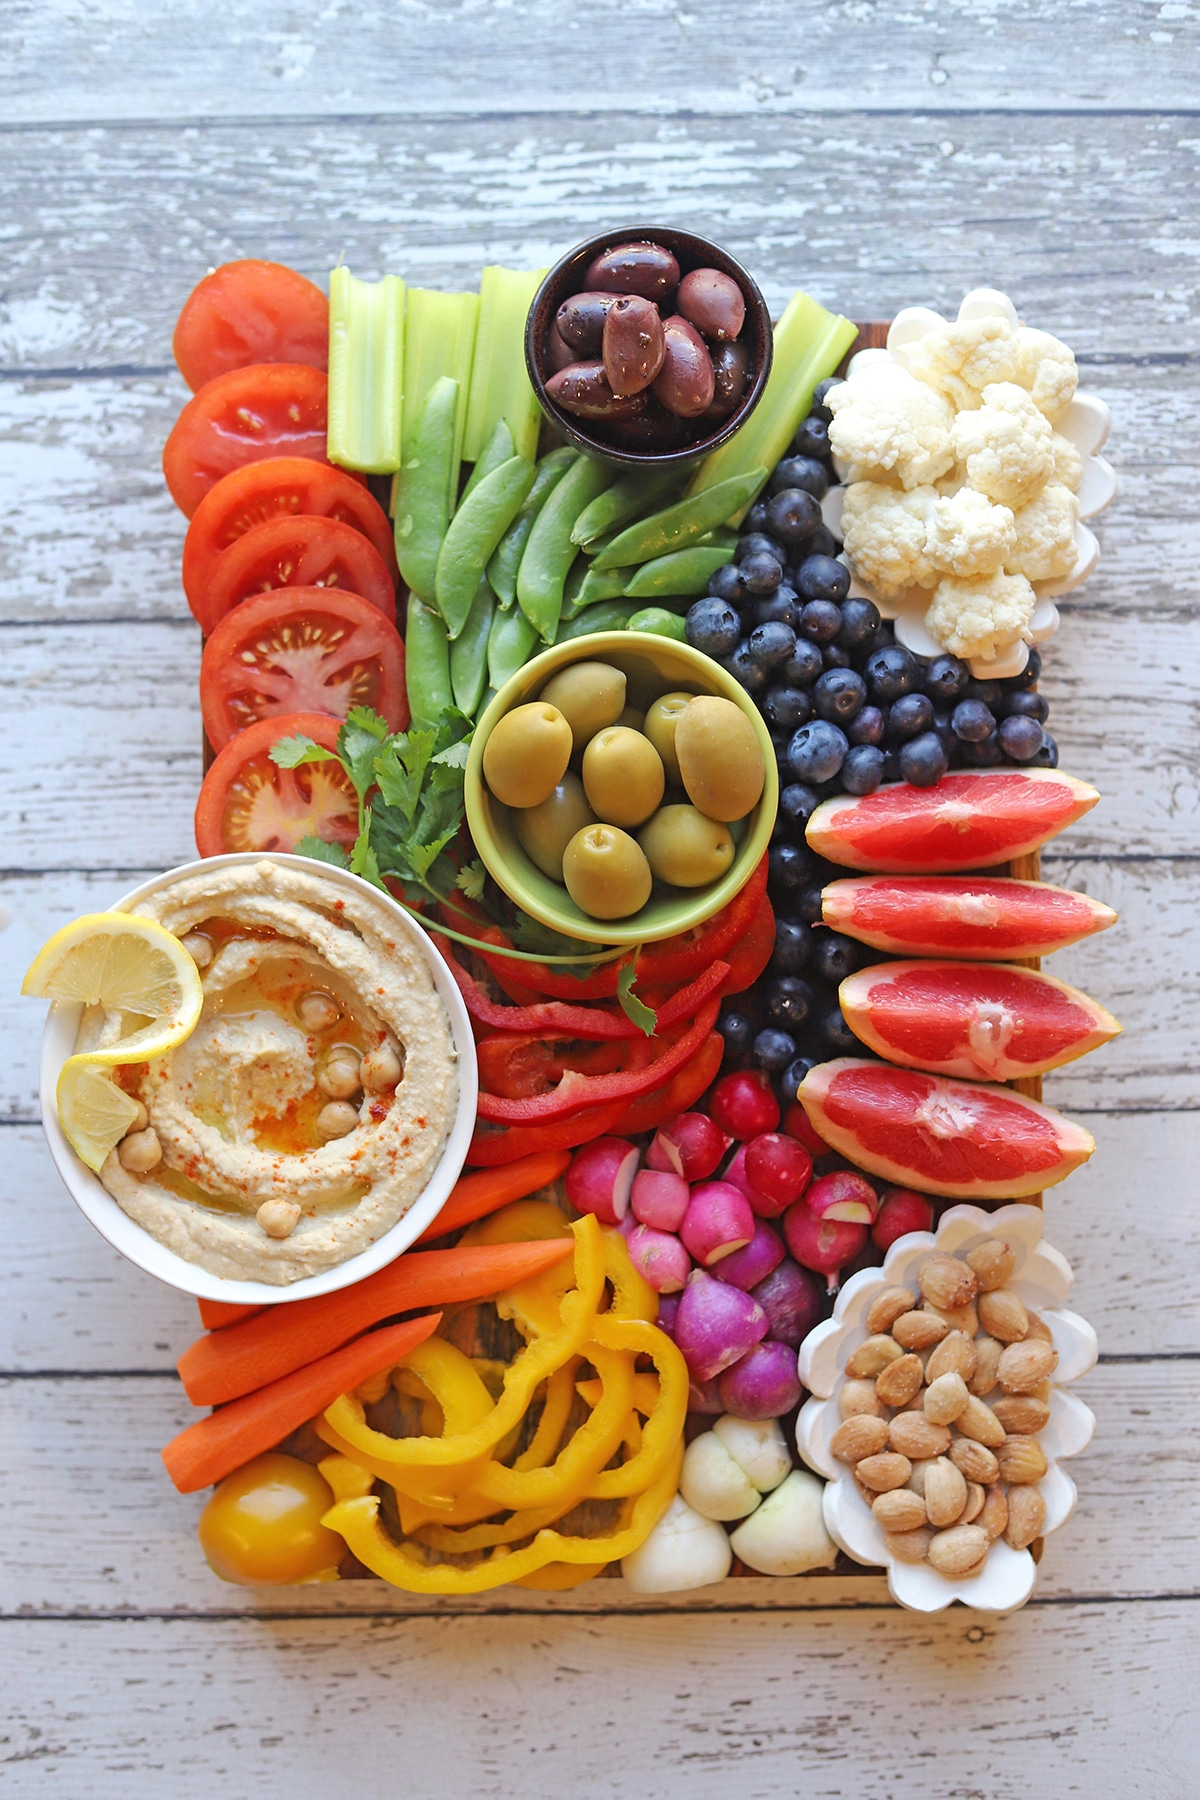 Veggie and fruit platter on table with hummus.